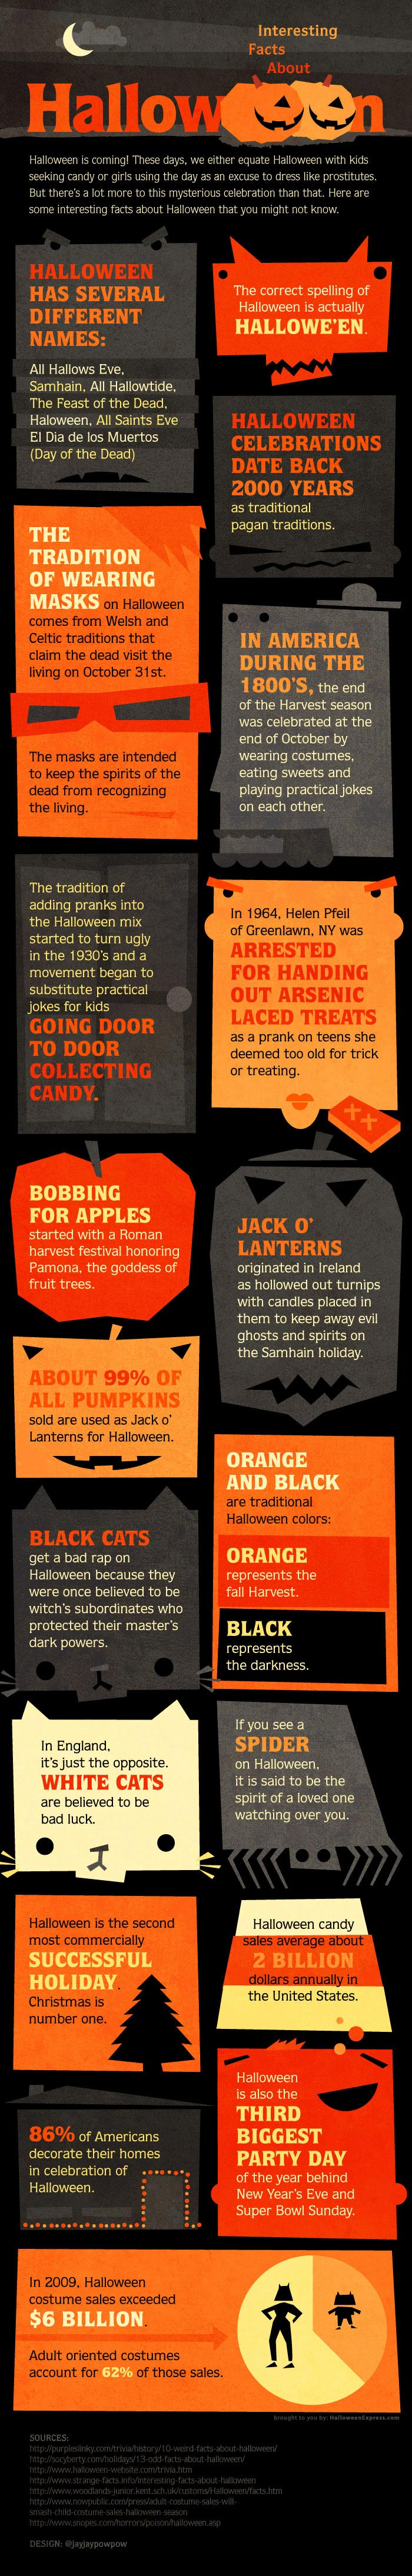 halloween-facts-infographic